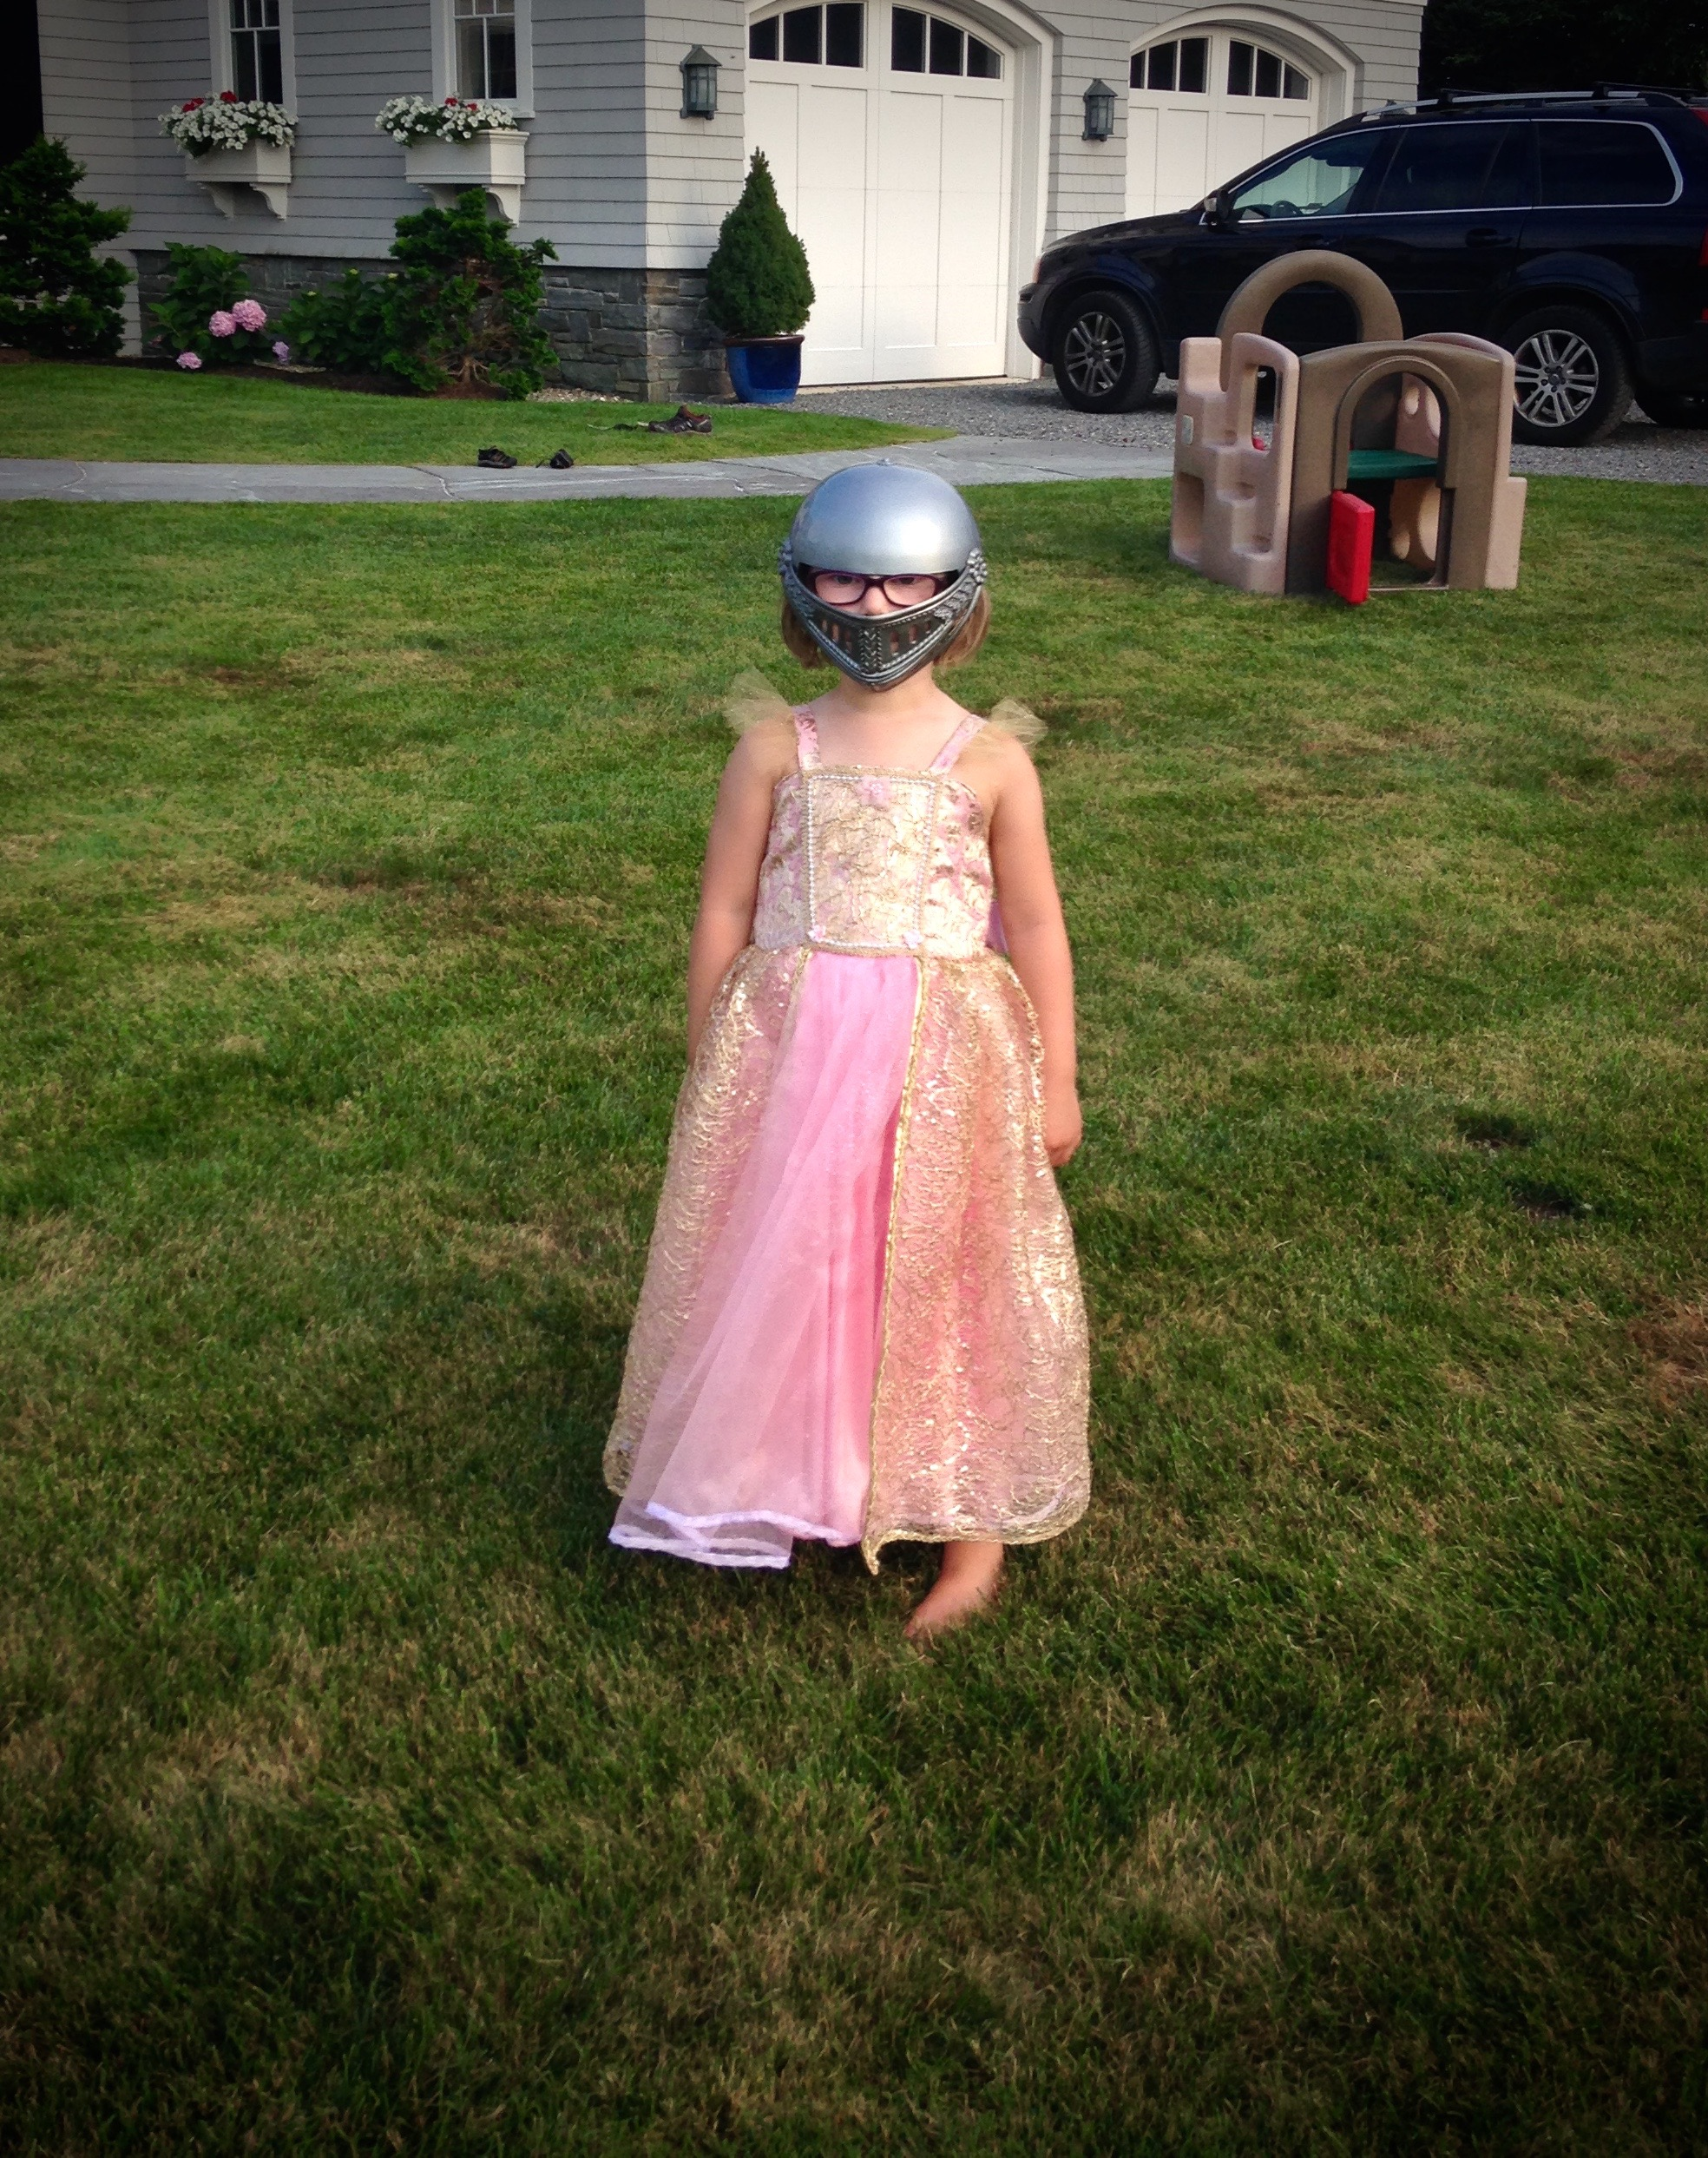 "My daughter in one of my gowns, she quickly stole the helmet from her brother and ran around yelling ""Protect!"", that's my kind of princess!"